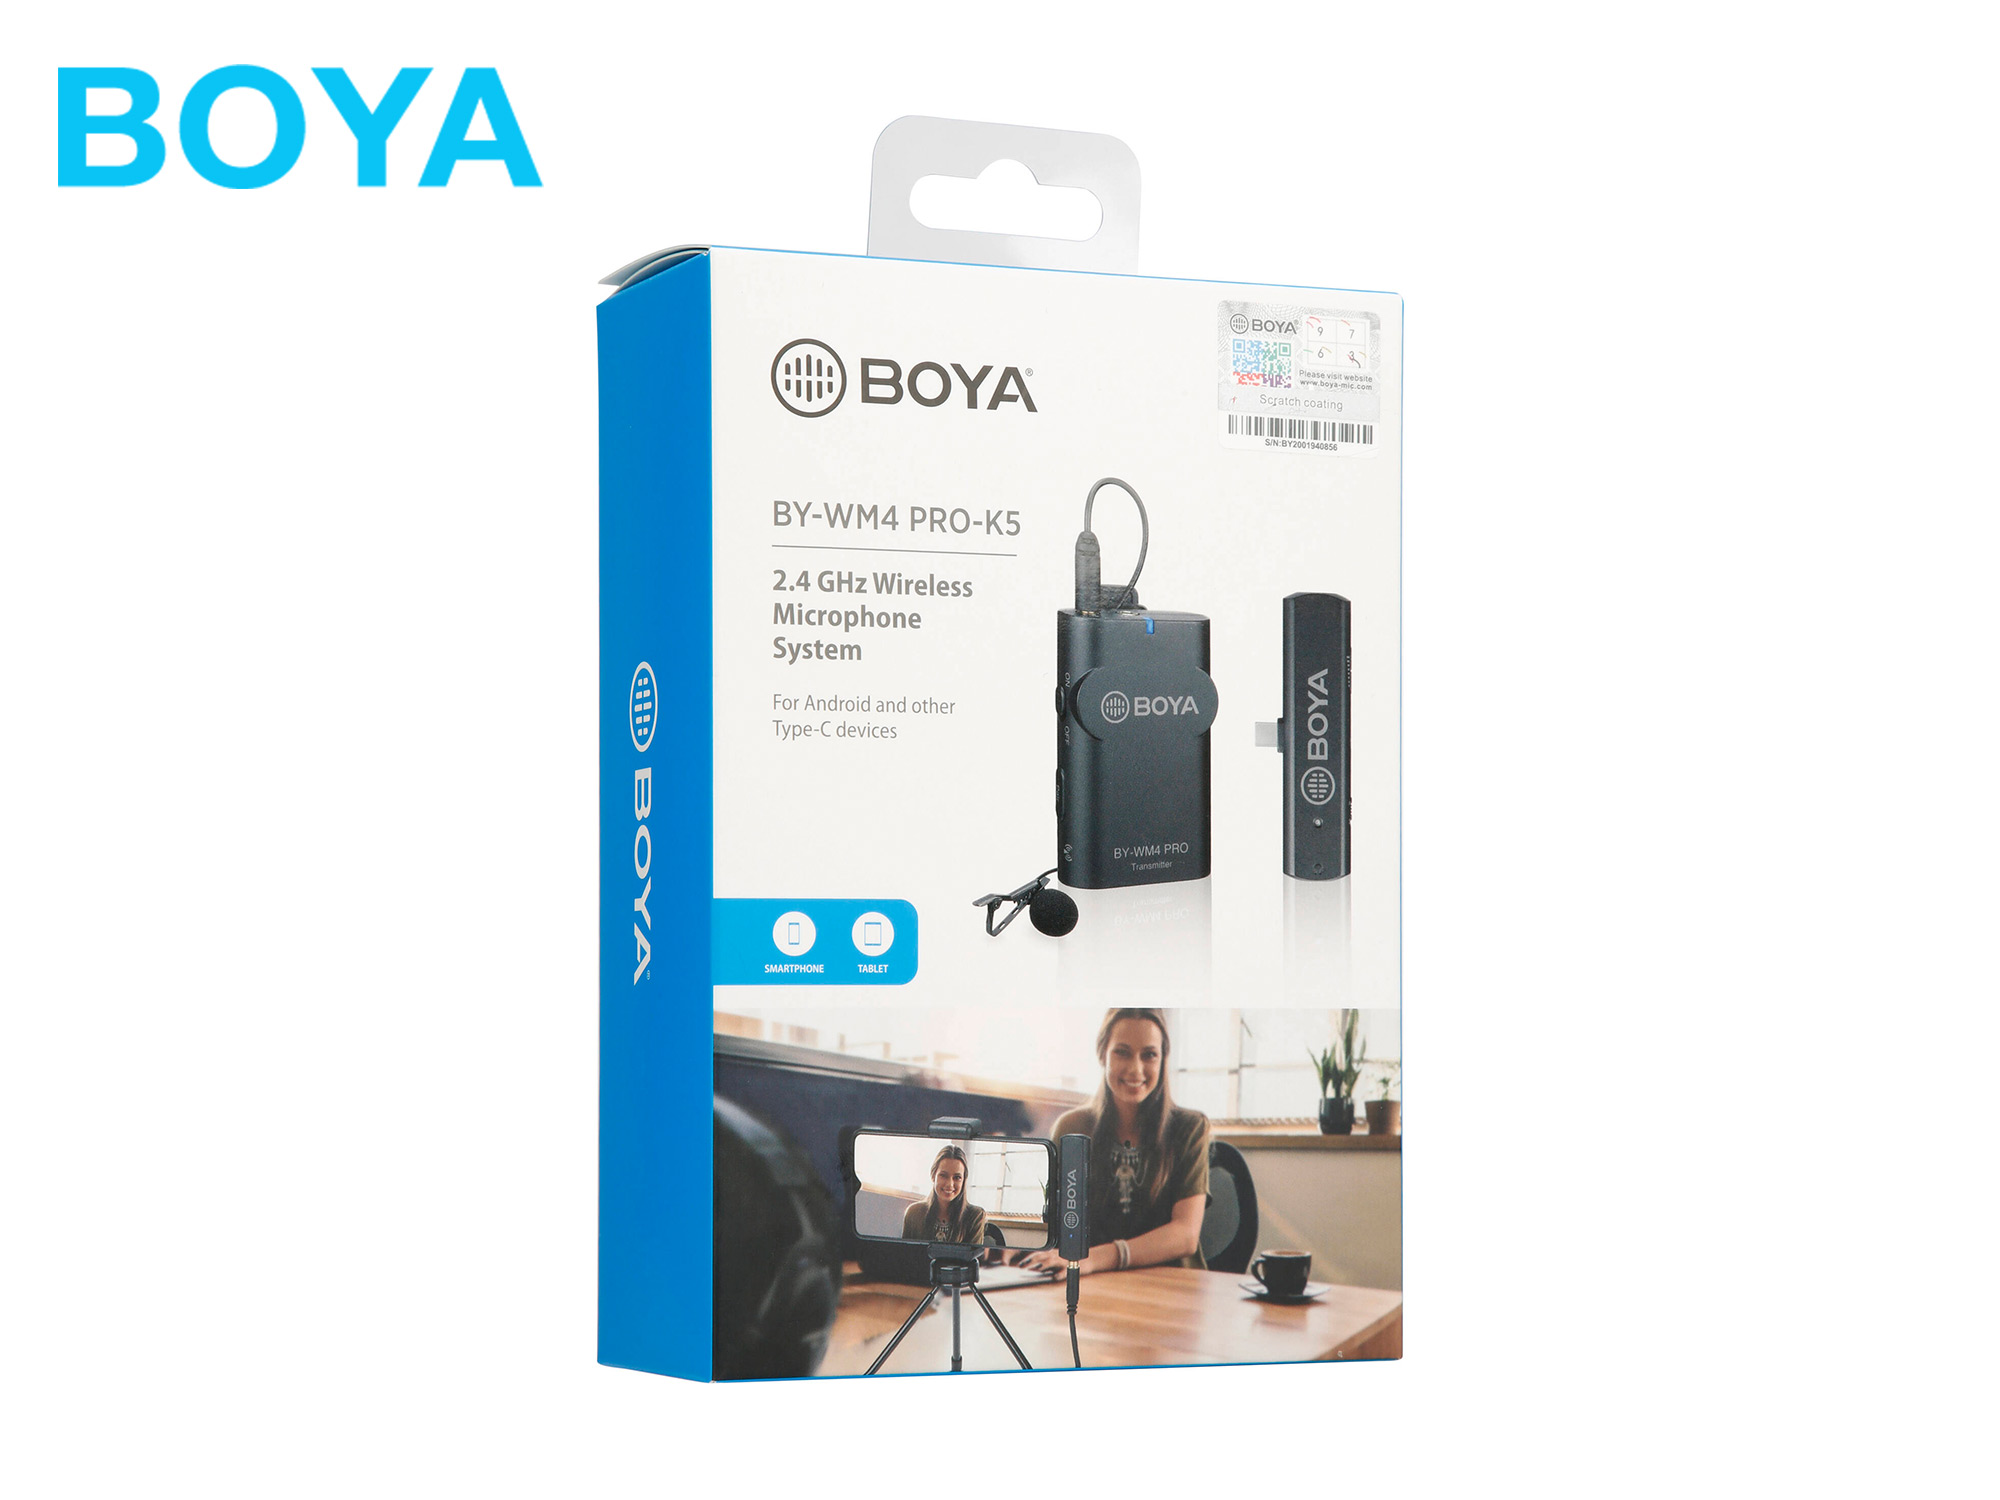 Boya BY-WM4 PRO K5 2.4 GHz Wireless Microphone System For Android and other Type-C devices